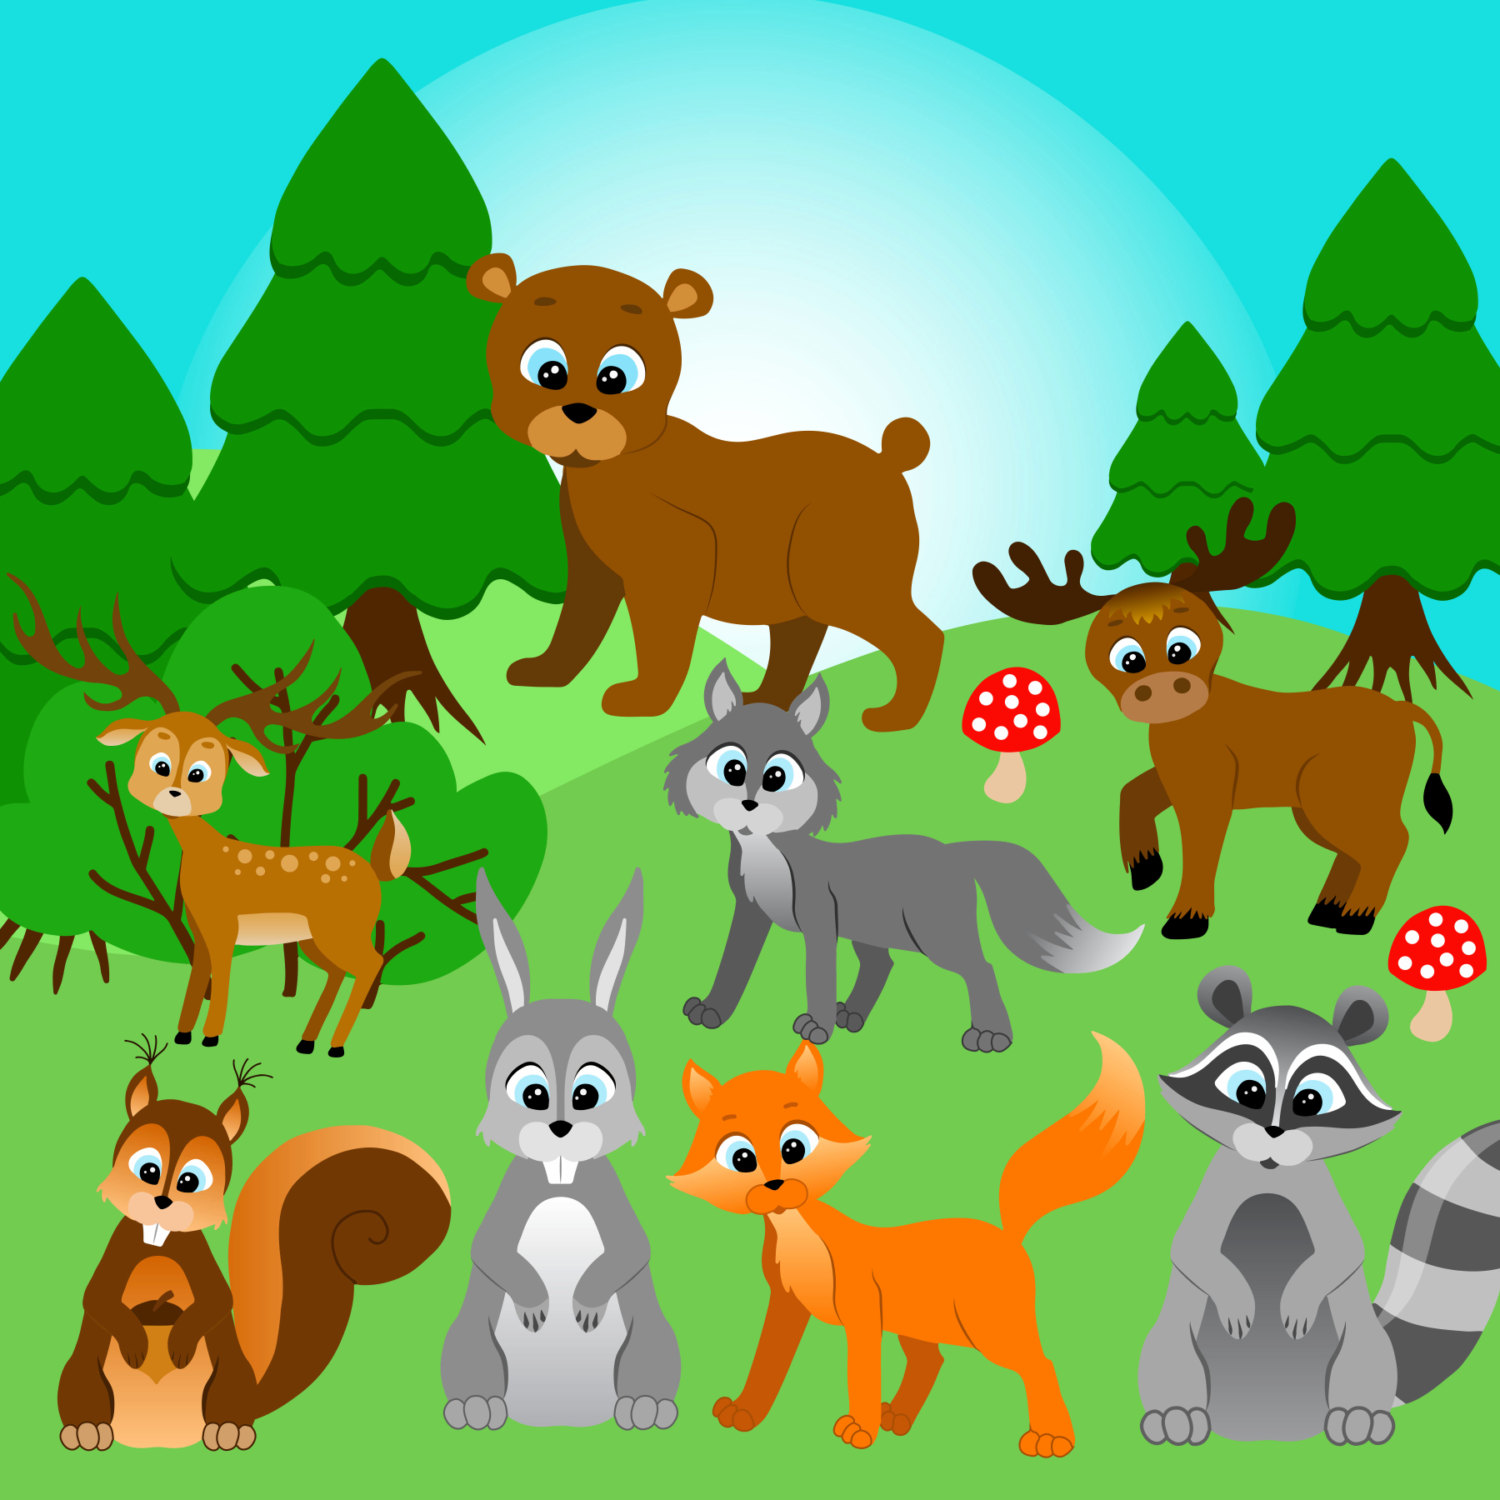 Wood clipart forrest Forest Wood Woodland foxes clipart